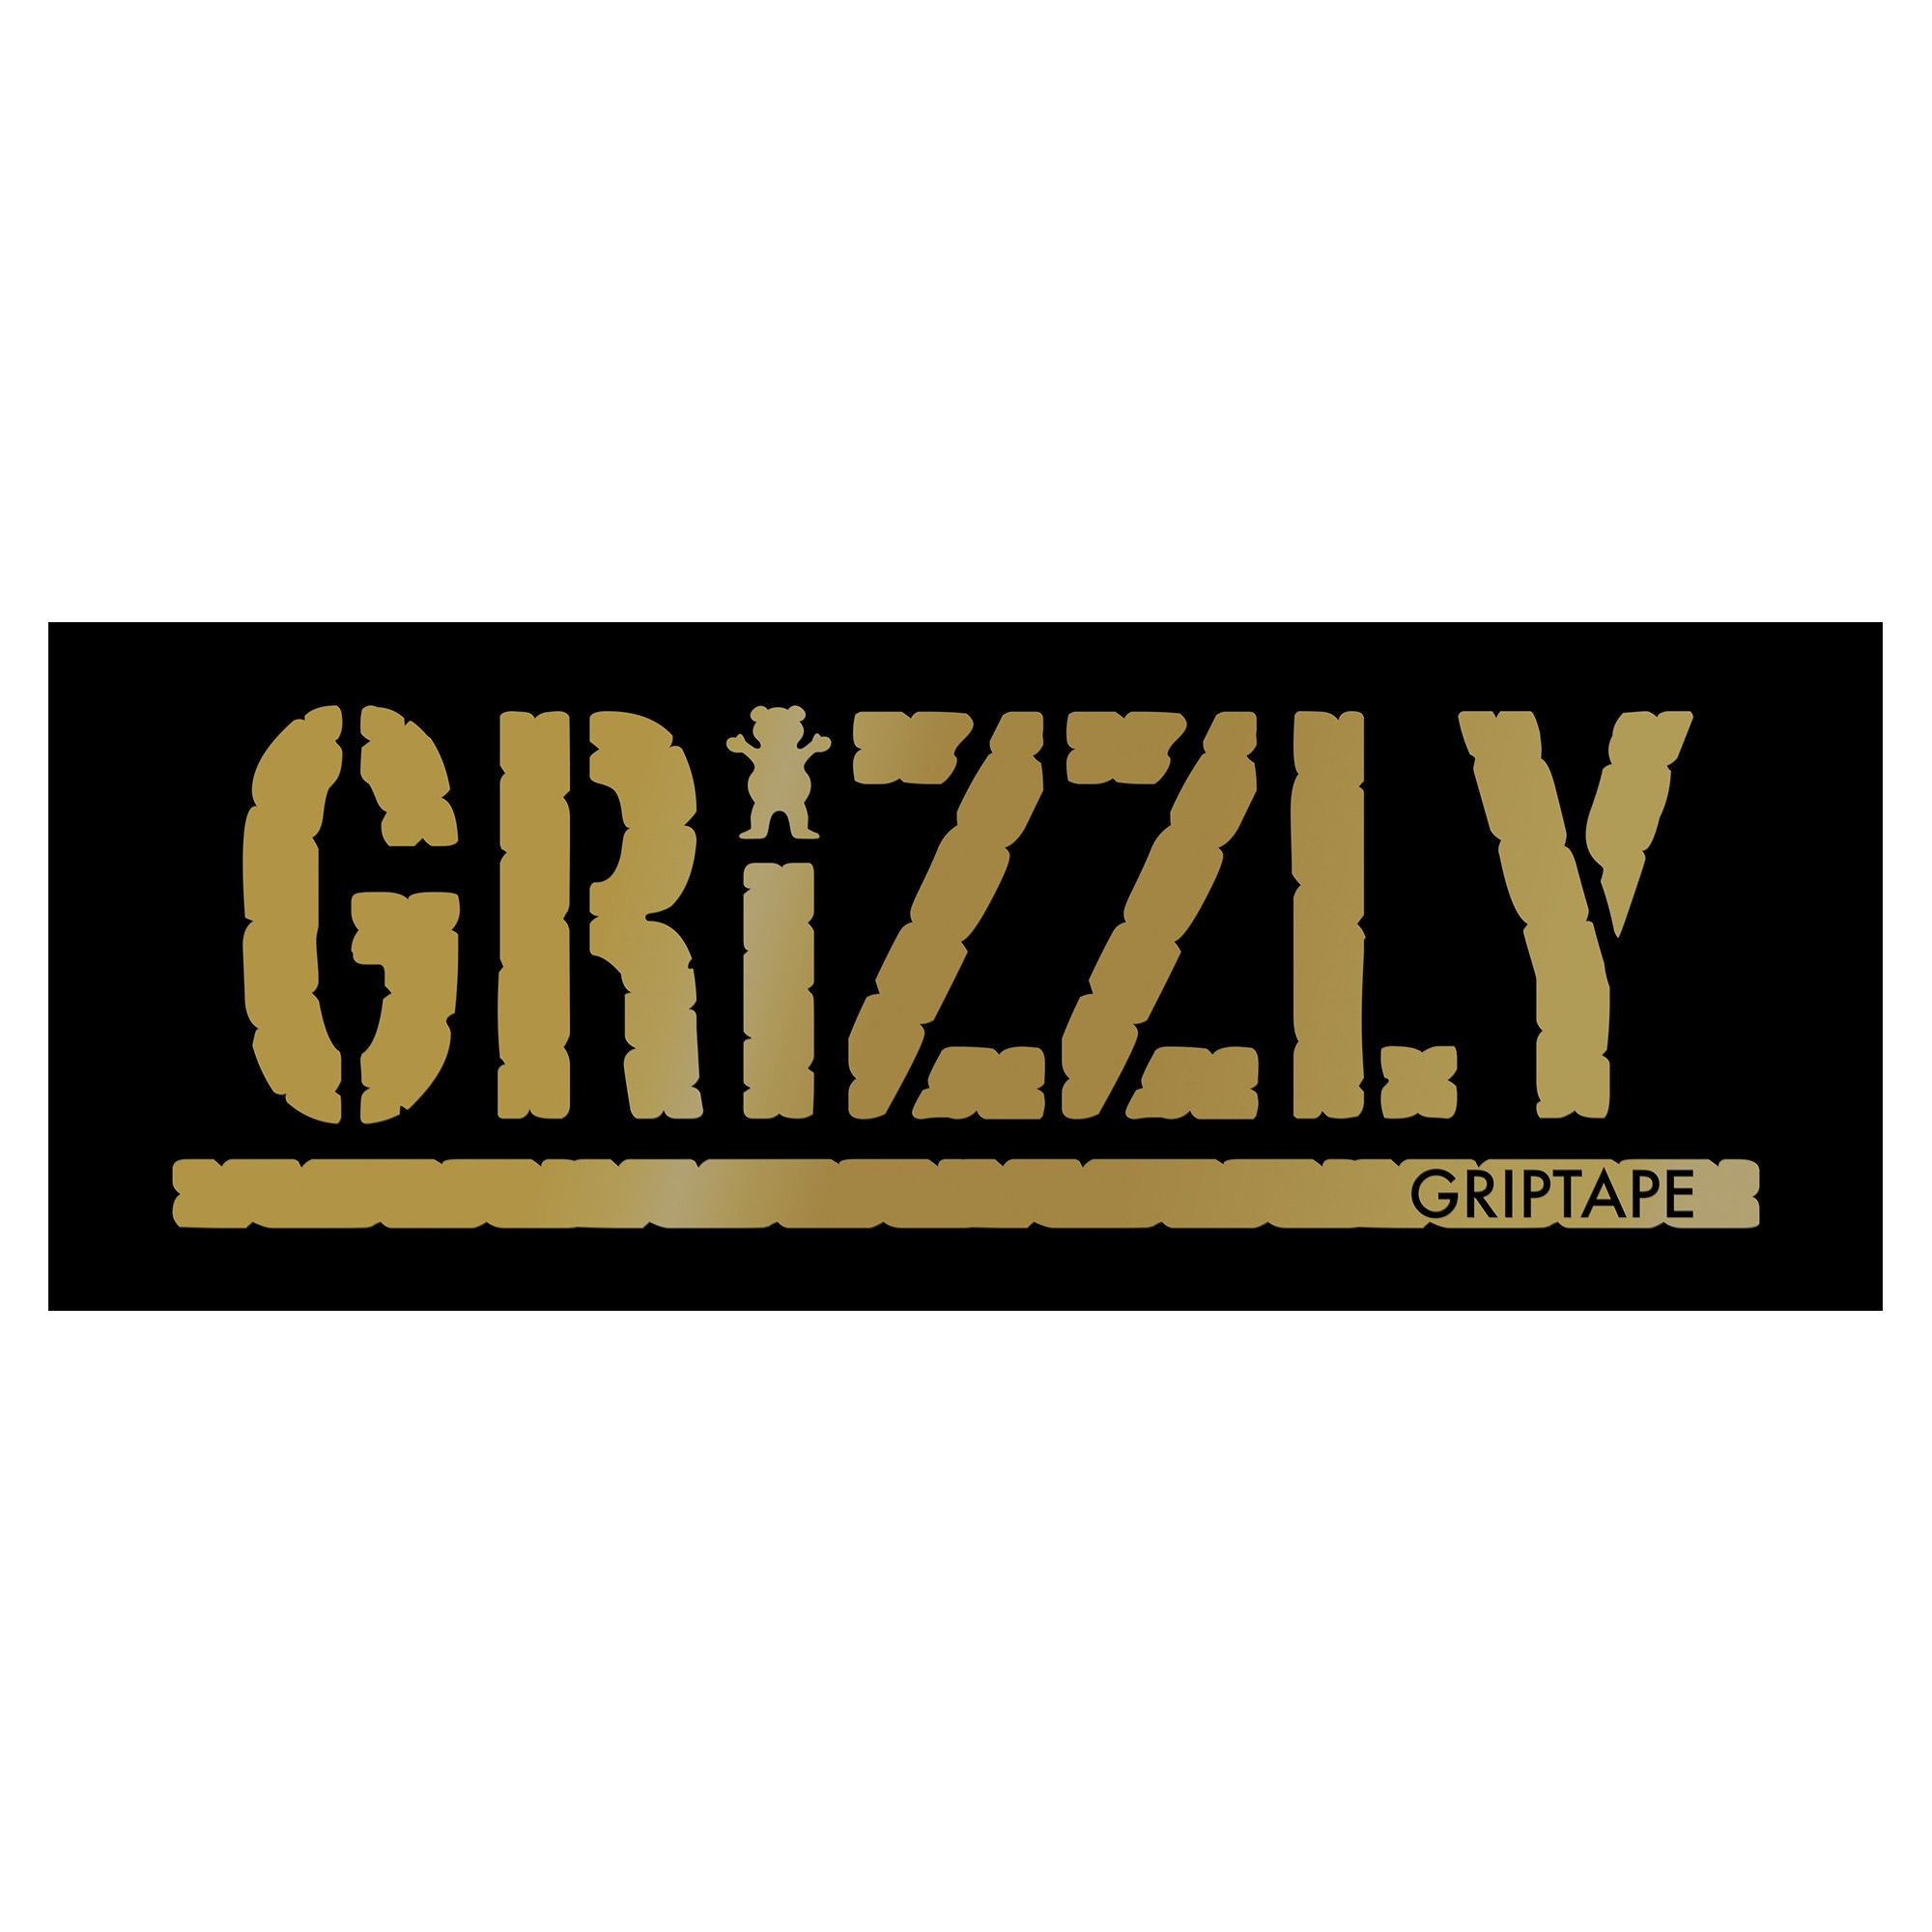 Grizzly White Stamp Print Griptape X Sheet